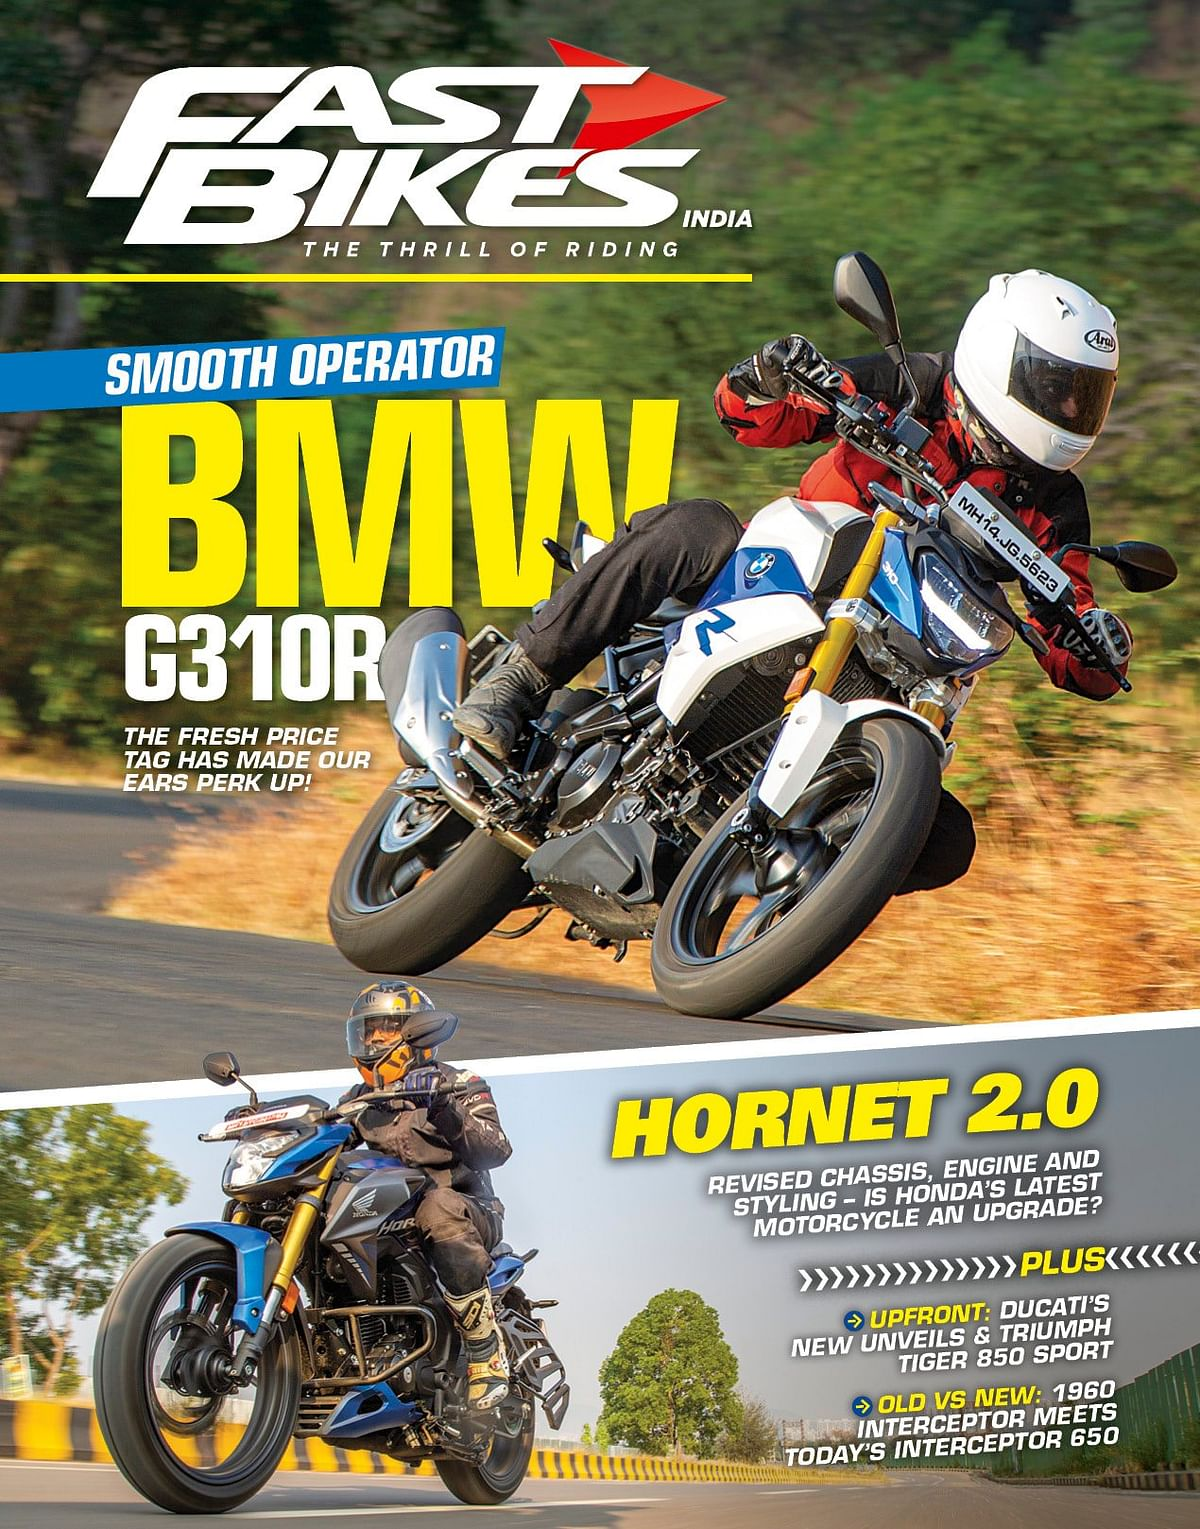 We get our hands on the new Honda Hornet 2.0 and BMW G 310 R